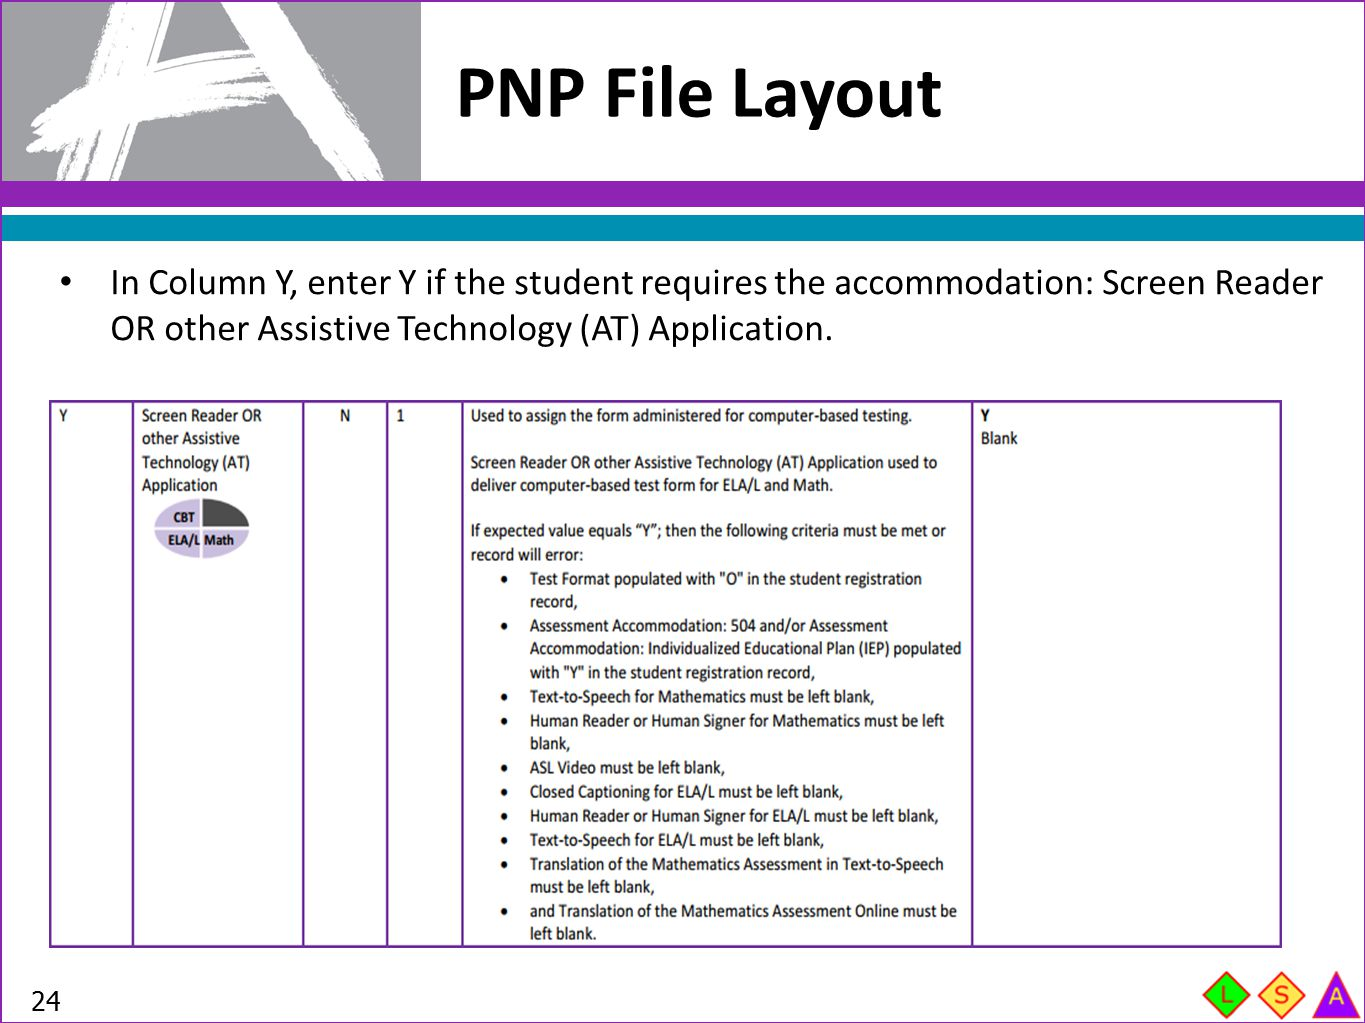 PNP File Layout In Column Y, enter Y if the student requires the accommodation: Screen Reader OR other Assistive Technology (AT) Application.